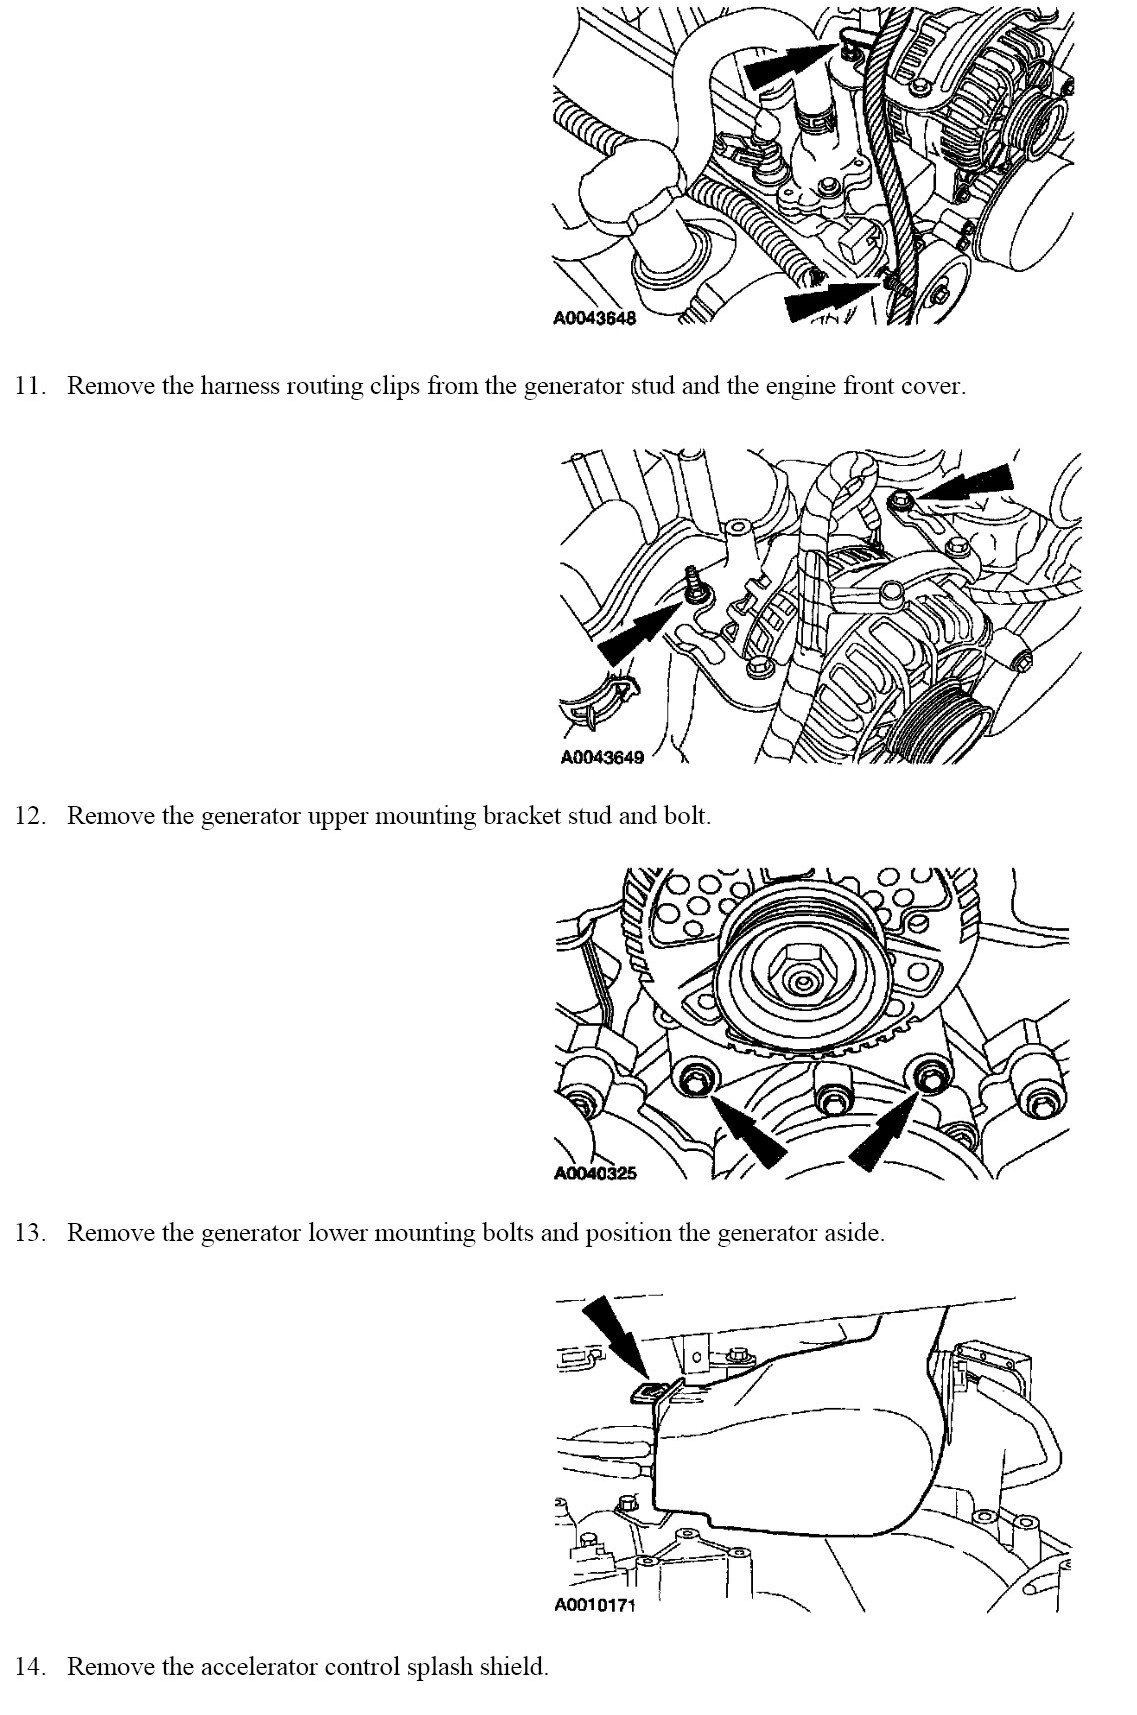 torque specs for intake manifold on a 2002 f250 5 4l 2wd four